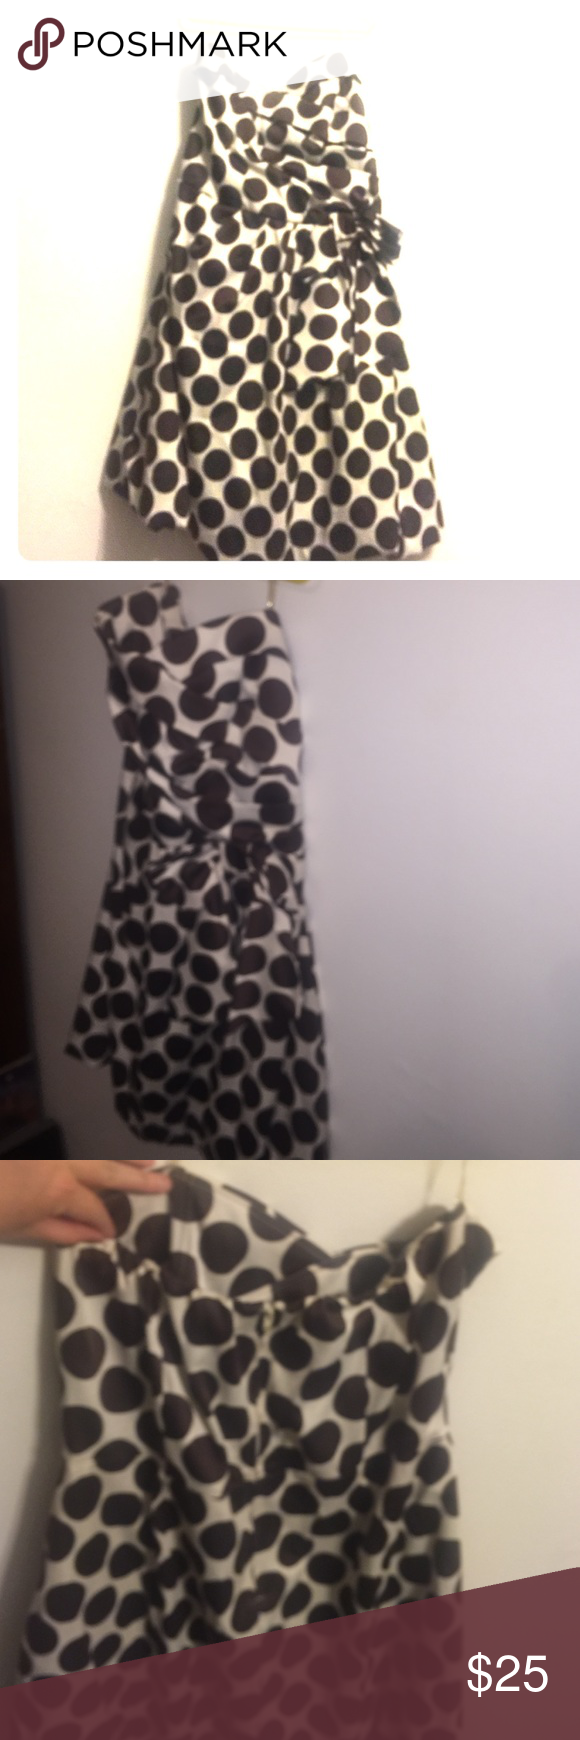 Polka Dot cocktail dress White with brown dots and now on side Dresses Strapless